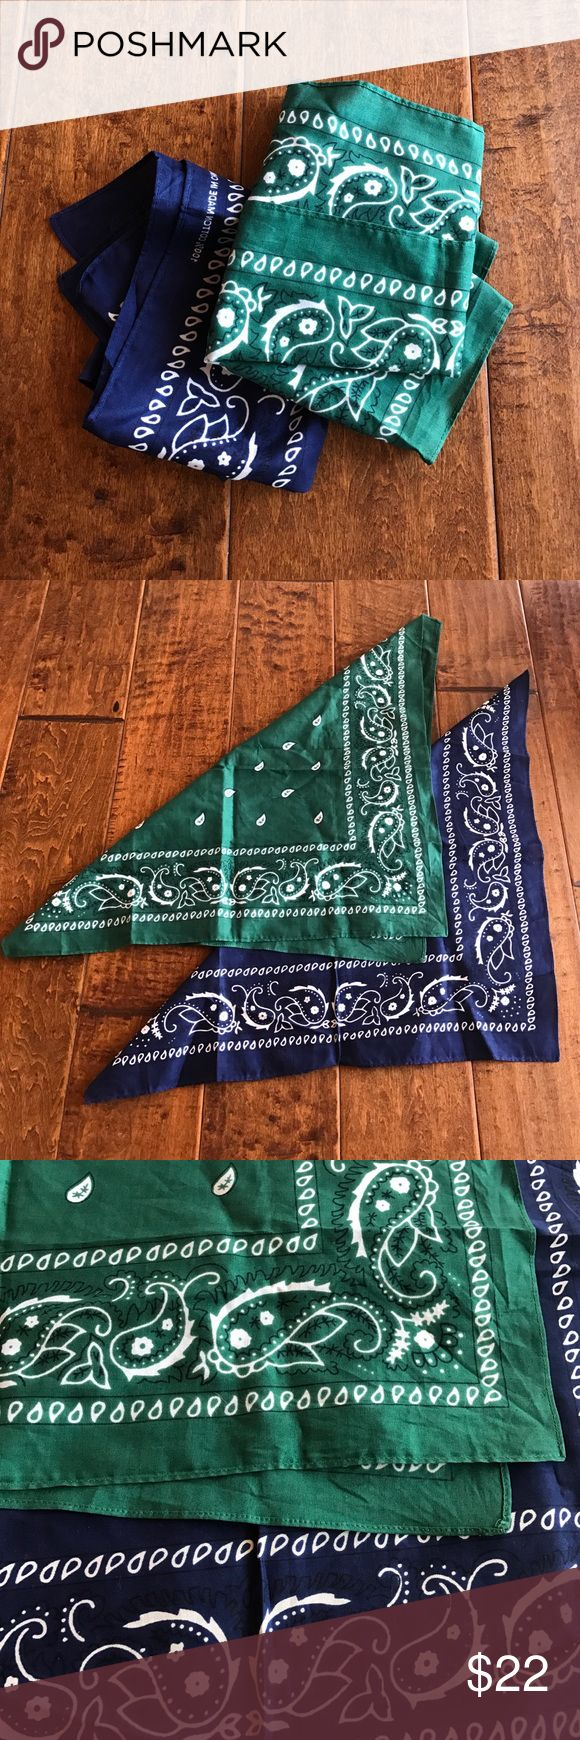 2 Vintage Bandanas!!!! Blue and green vintage bandanas. Still stiff never been washed. Vintage Accessories Scarves & Wraps